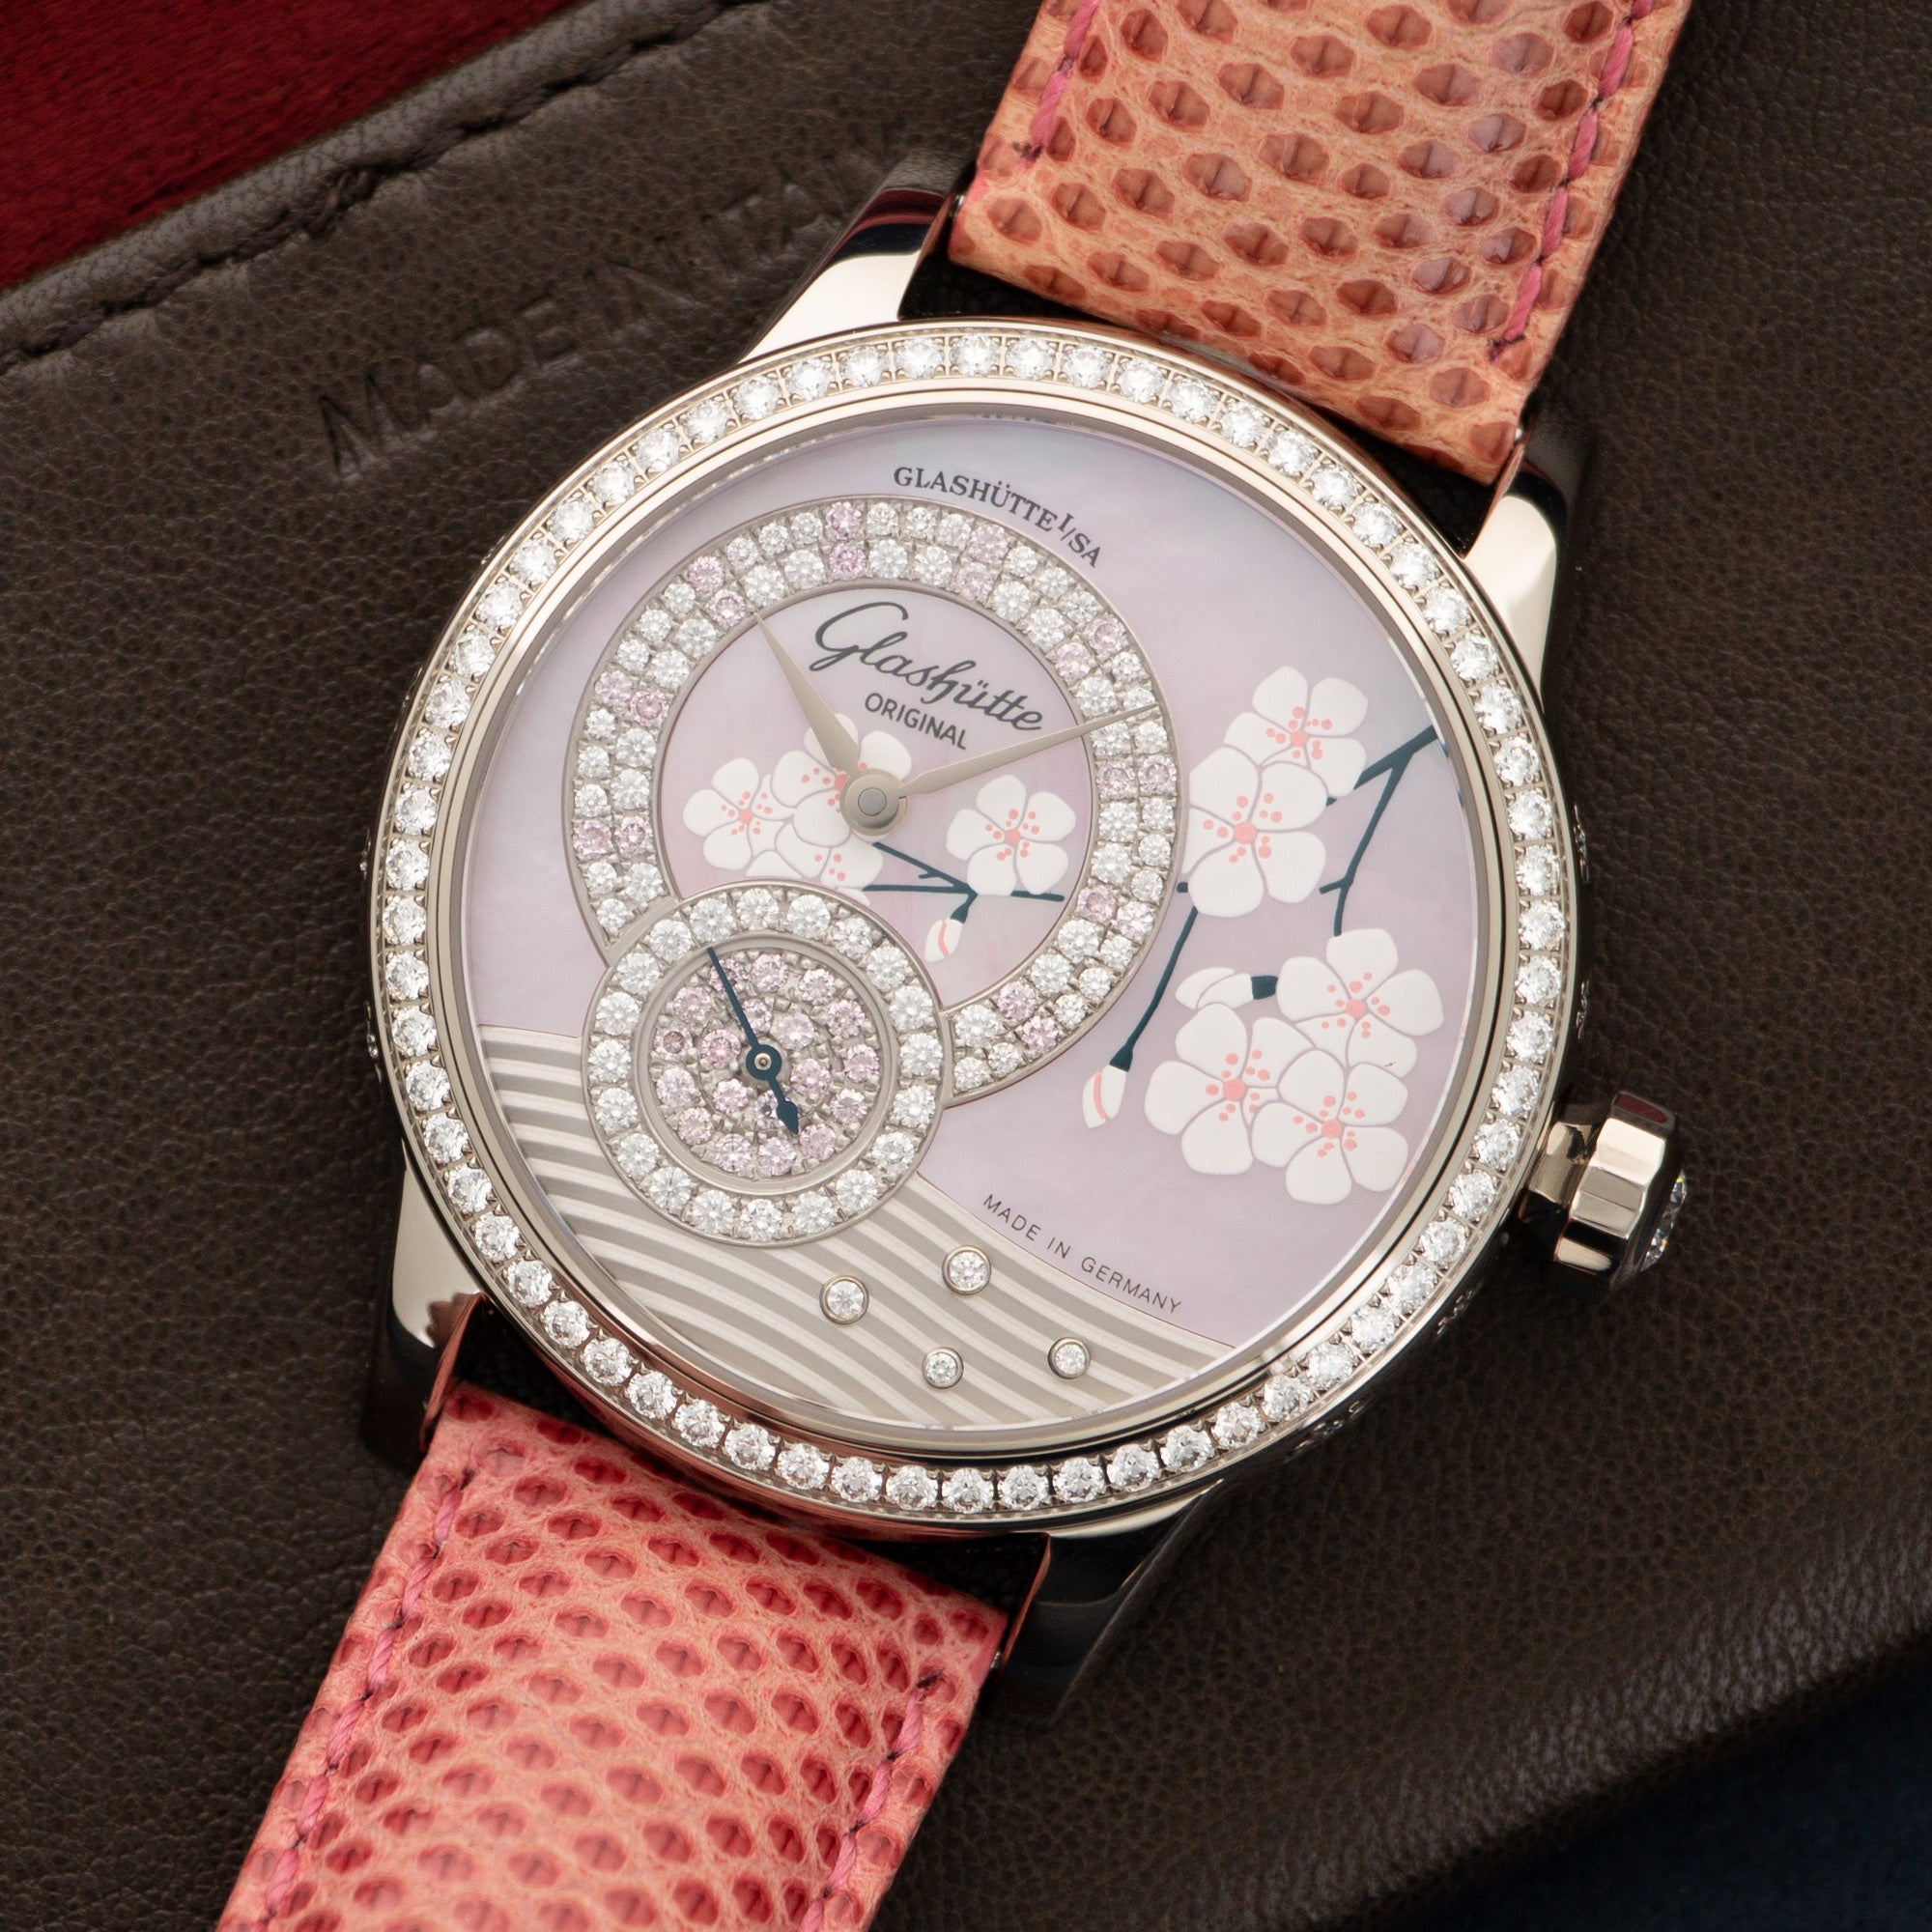 Glashutte Spring Blossom 90-00-04-04-04 18k WG  Unworn Unisex 18k WG Mother of Pearl with Pave Diamonds 39mm Automatic 2018 Pink Strap Original Box and Certificate